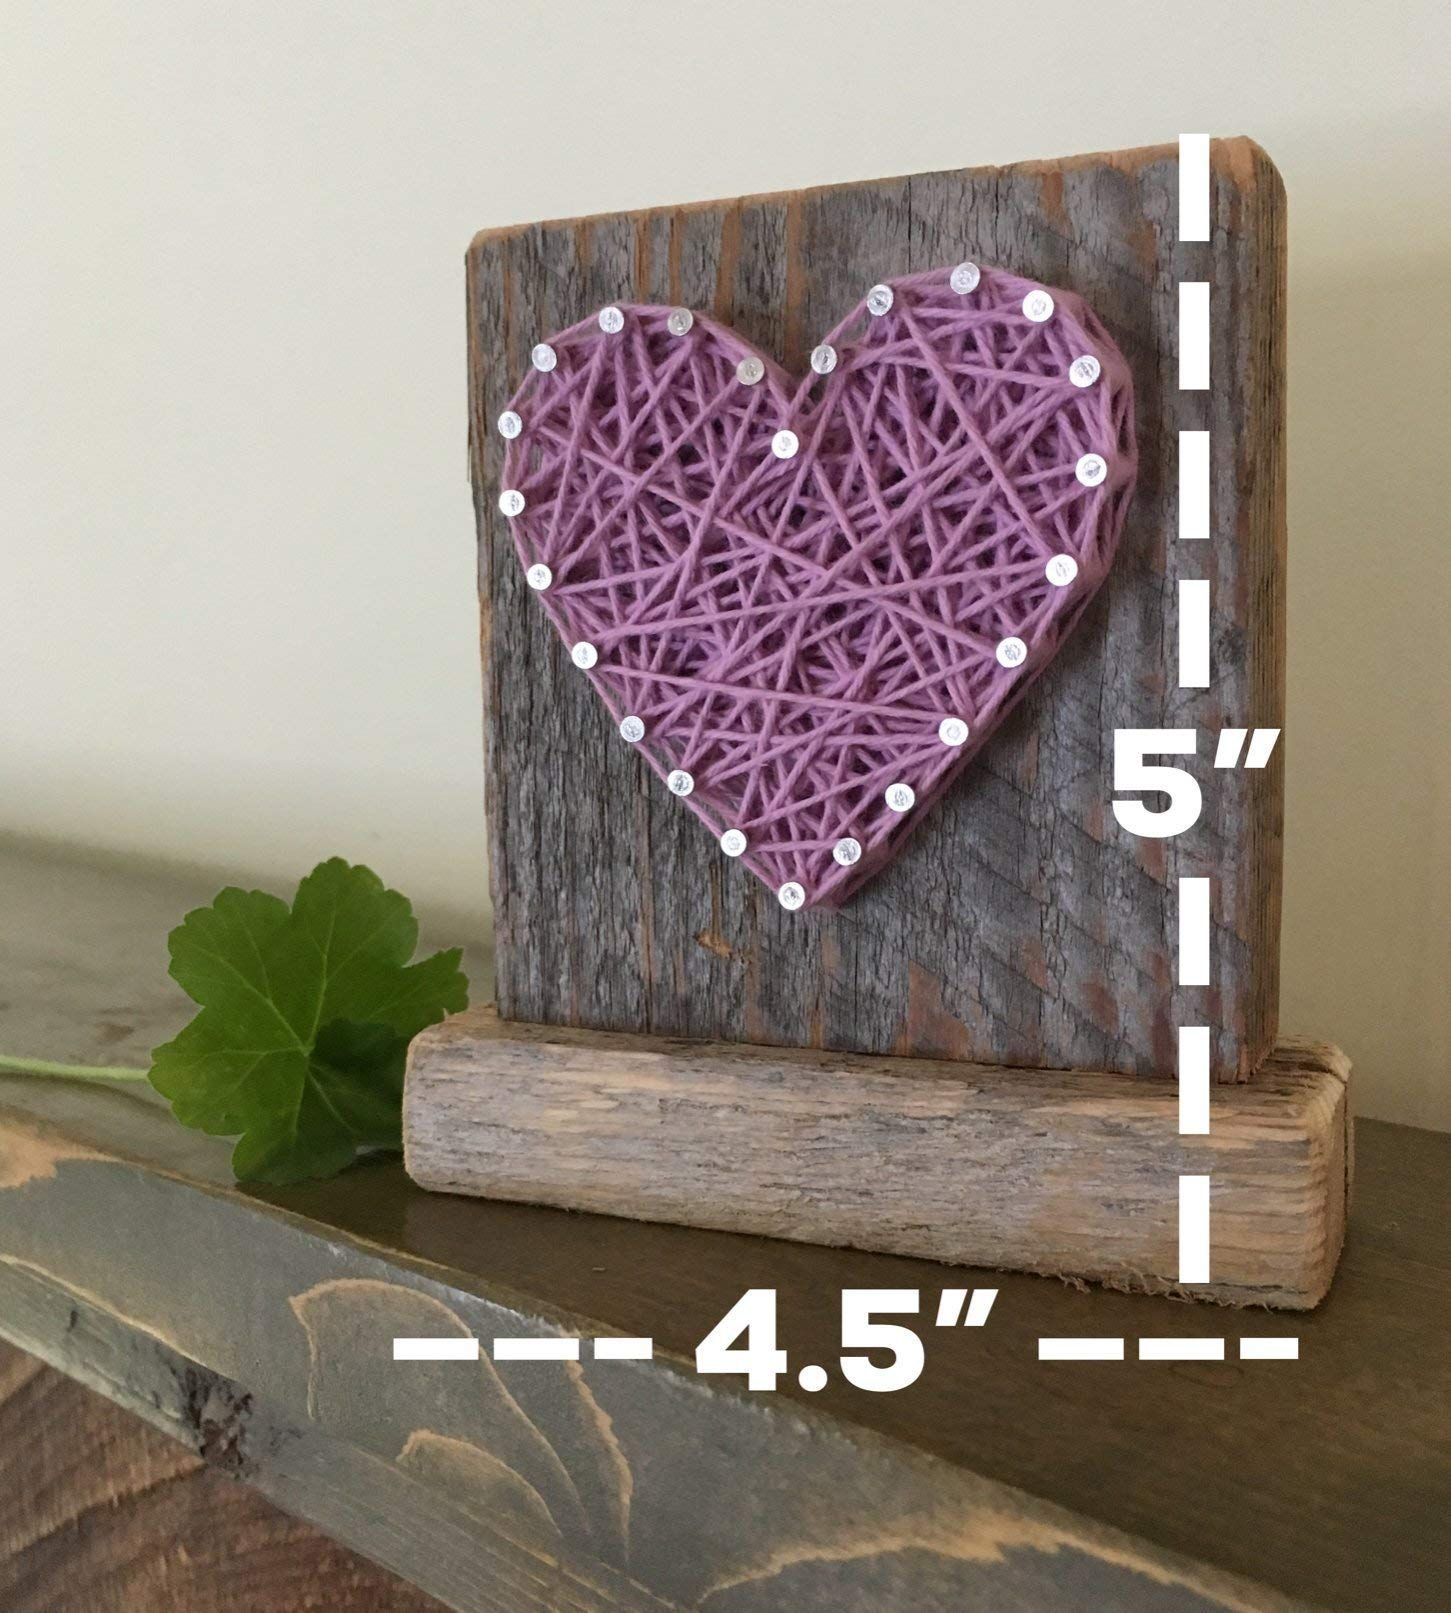 Sweet & small freestanding wooden lavender string art heart sign. Perfect for Mother's Day, home accents, Wedding favors, Anniversary gifts, nursery decoration and just because gifts by Nail it Art. by Nail it Art (Image #1)